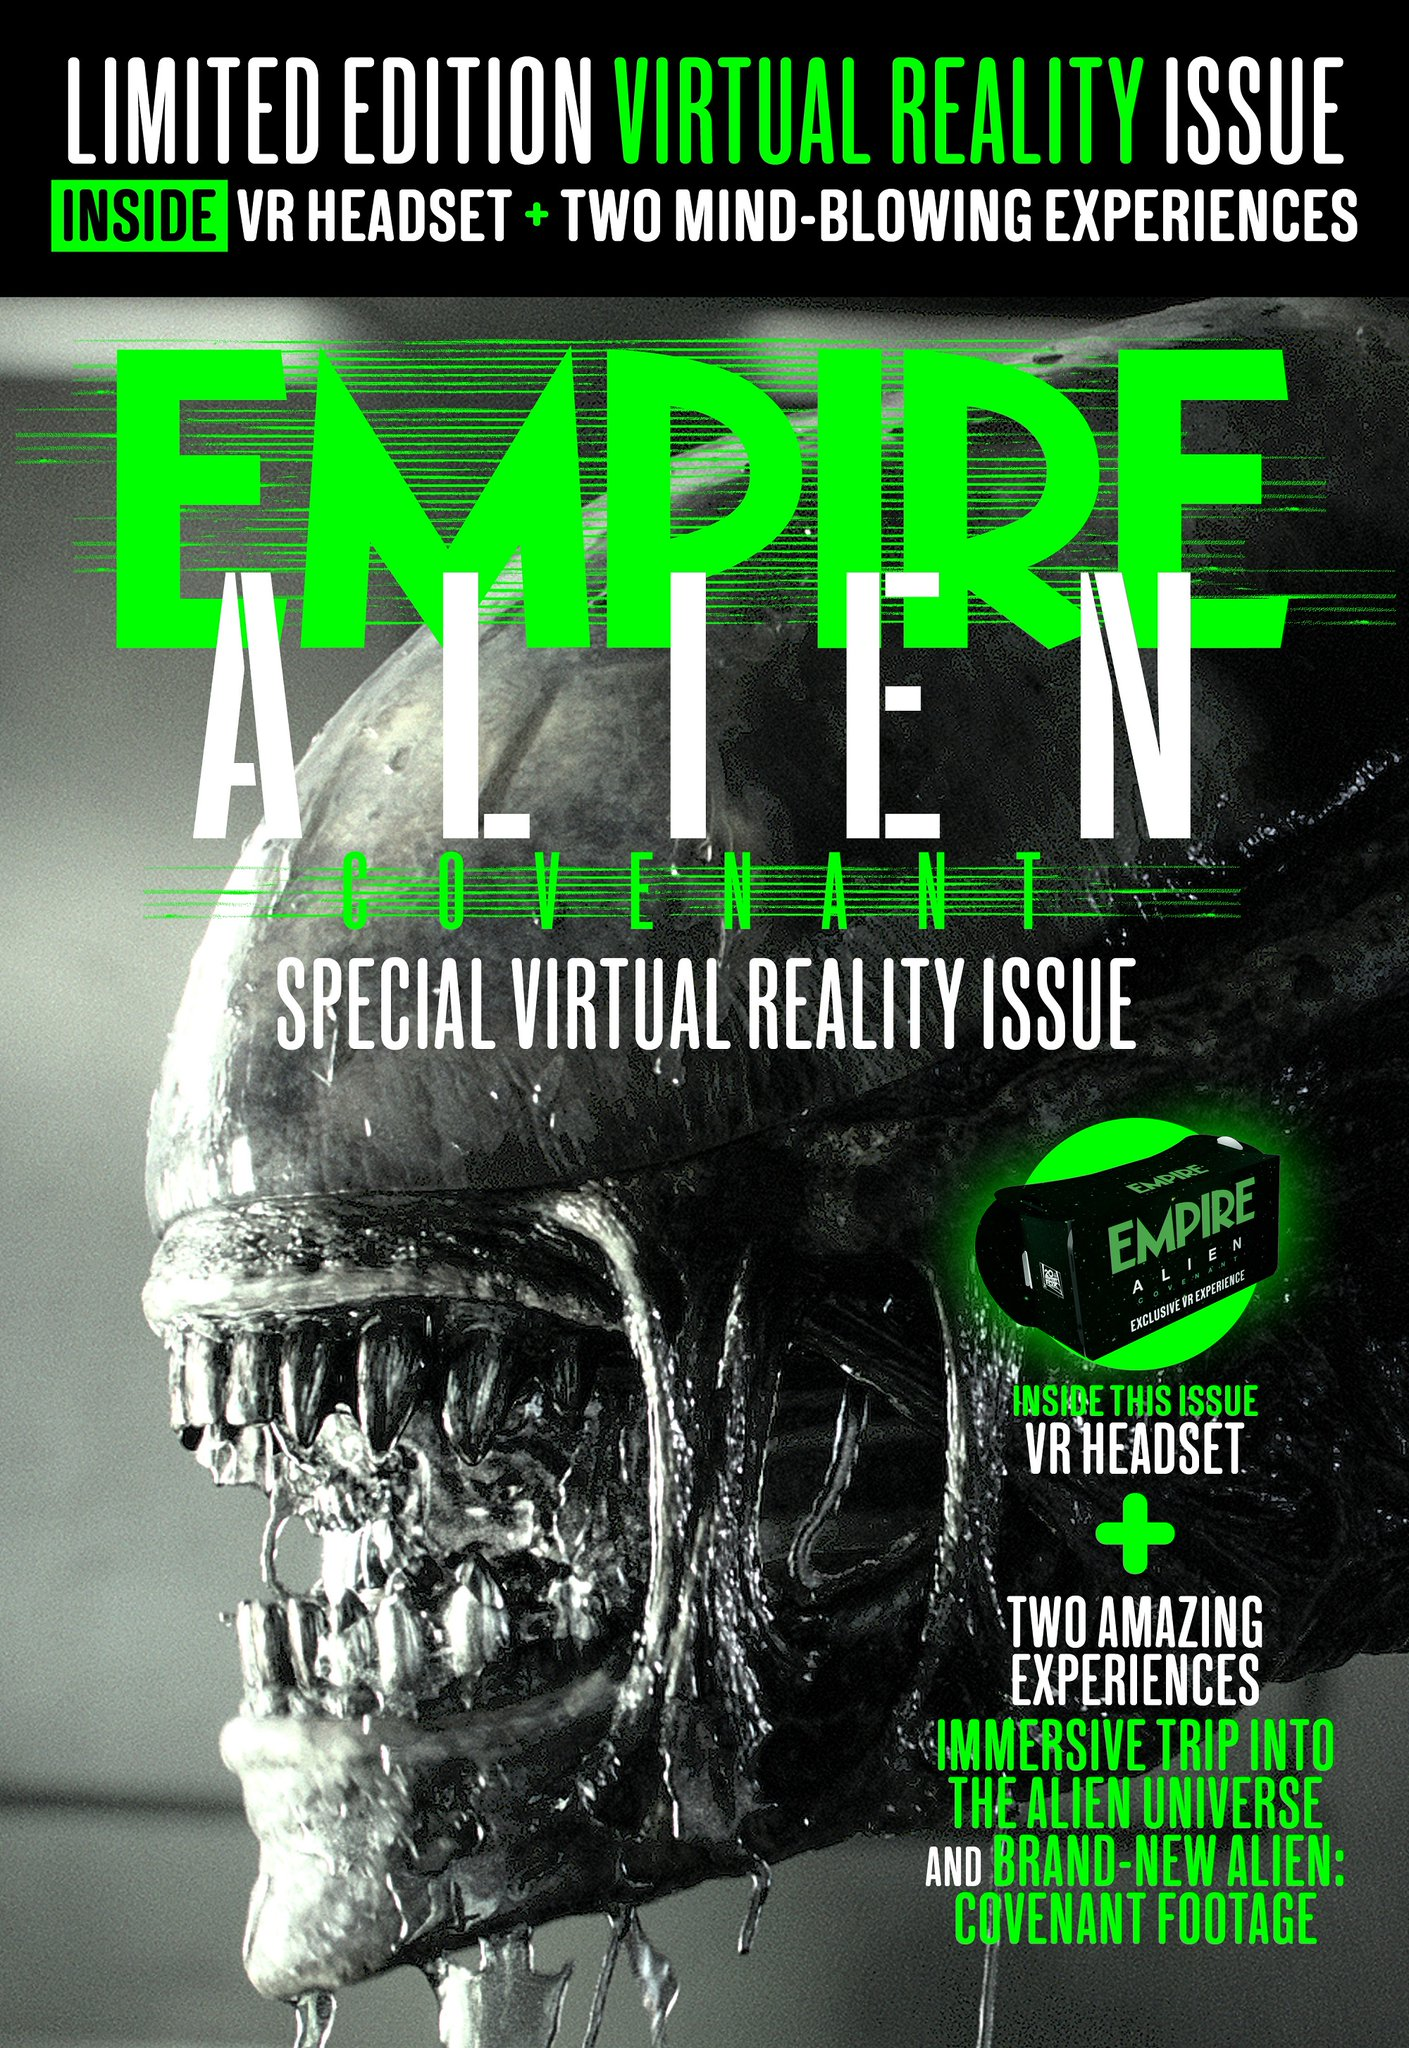 Empire's Limited Edition Alien: Covenant Alien Day Virtual Reality Issue Announced!